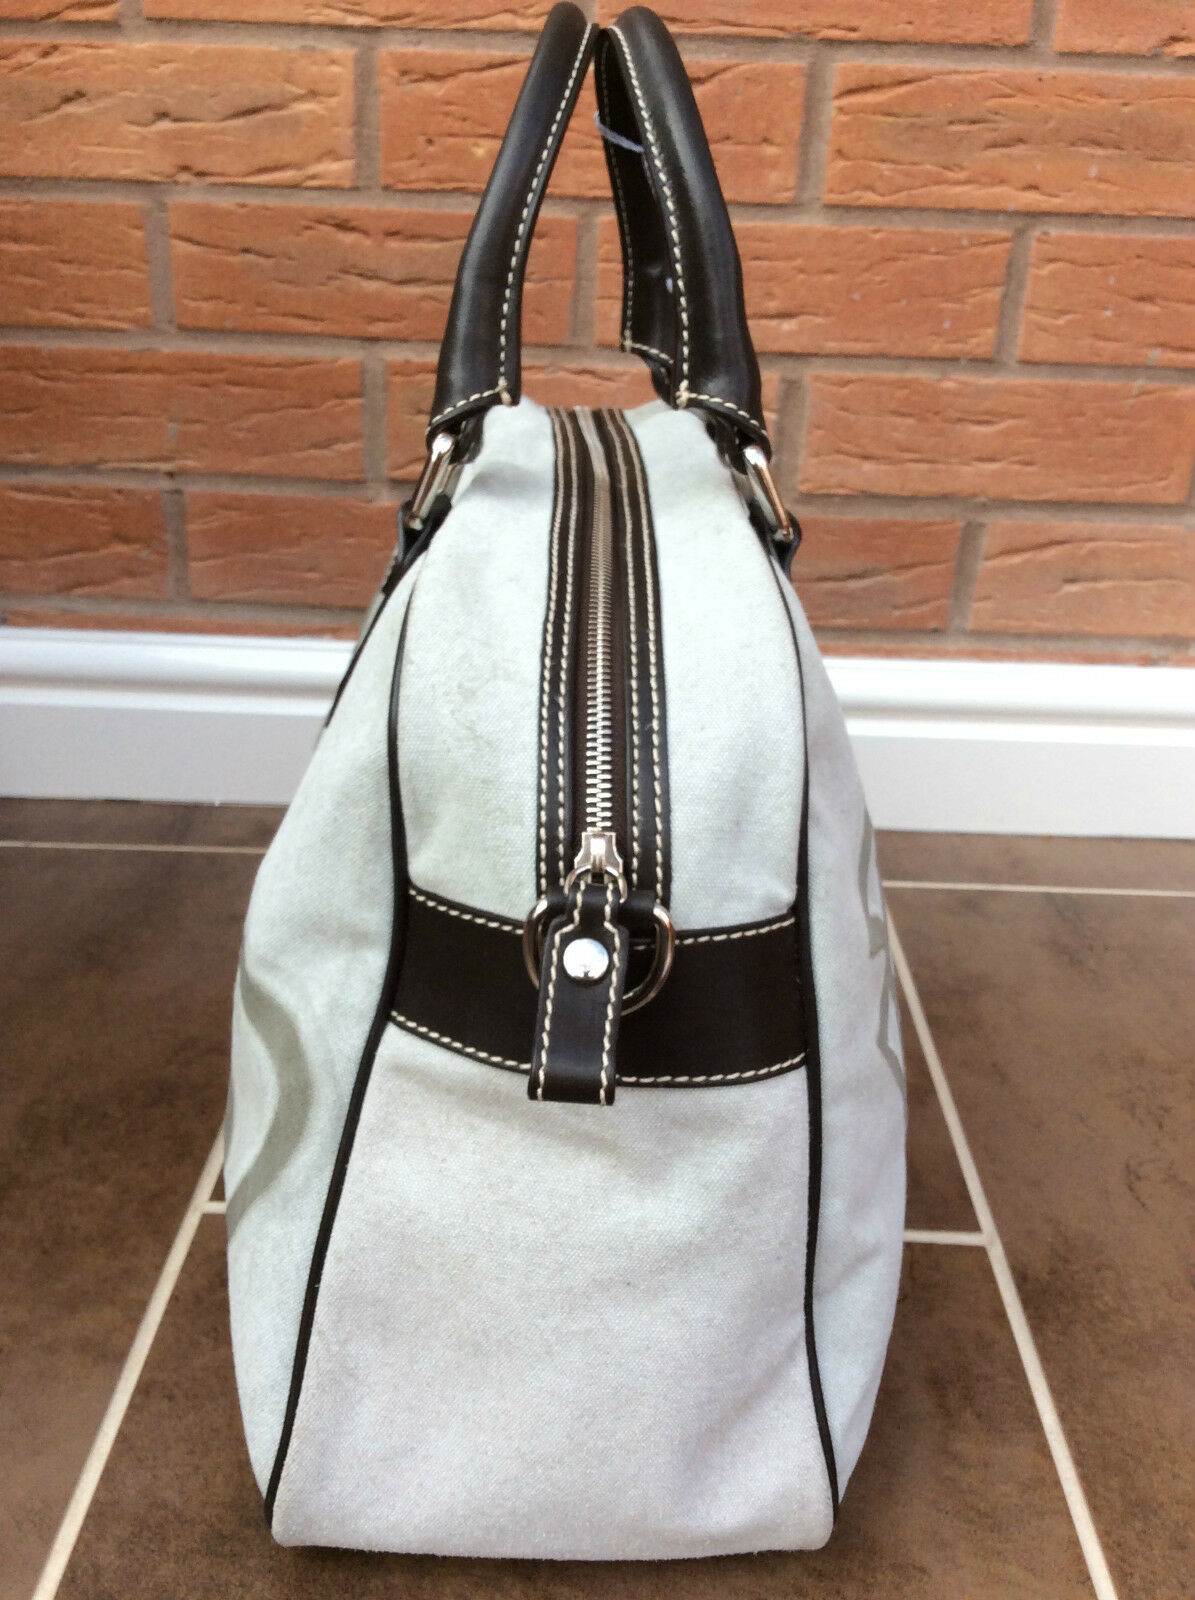 Vivienne Westwood Large Iconic Orb Tote Overnight Bag Retail Made in Italy  for sale online  6f6045863fc3b